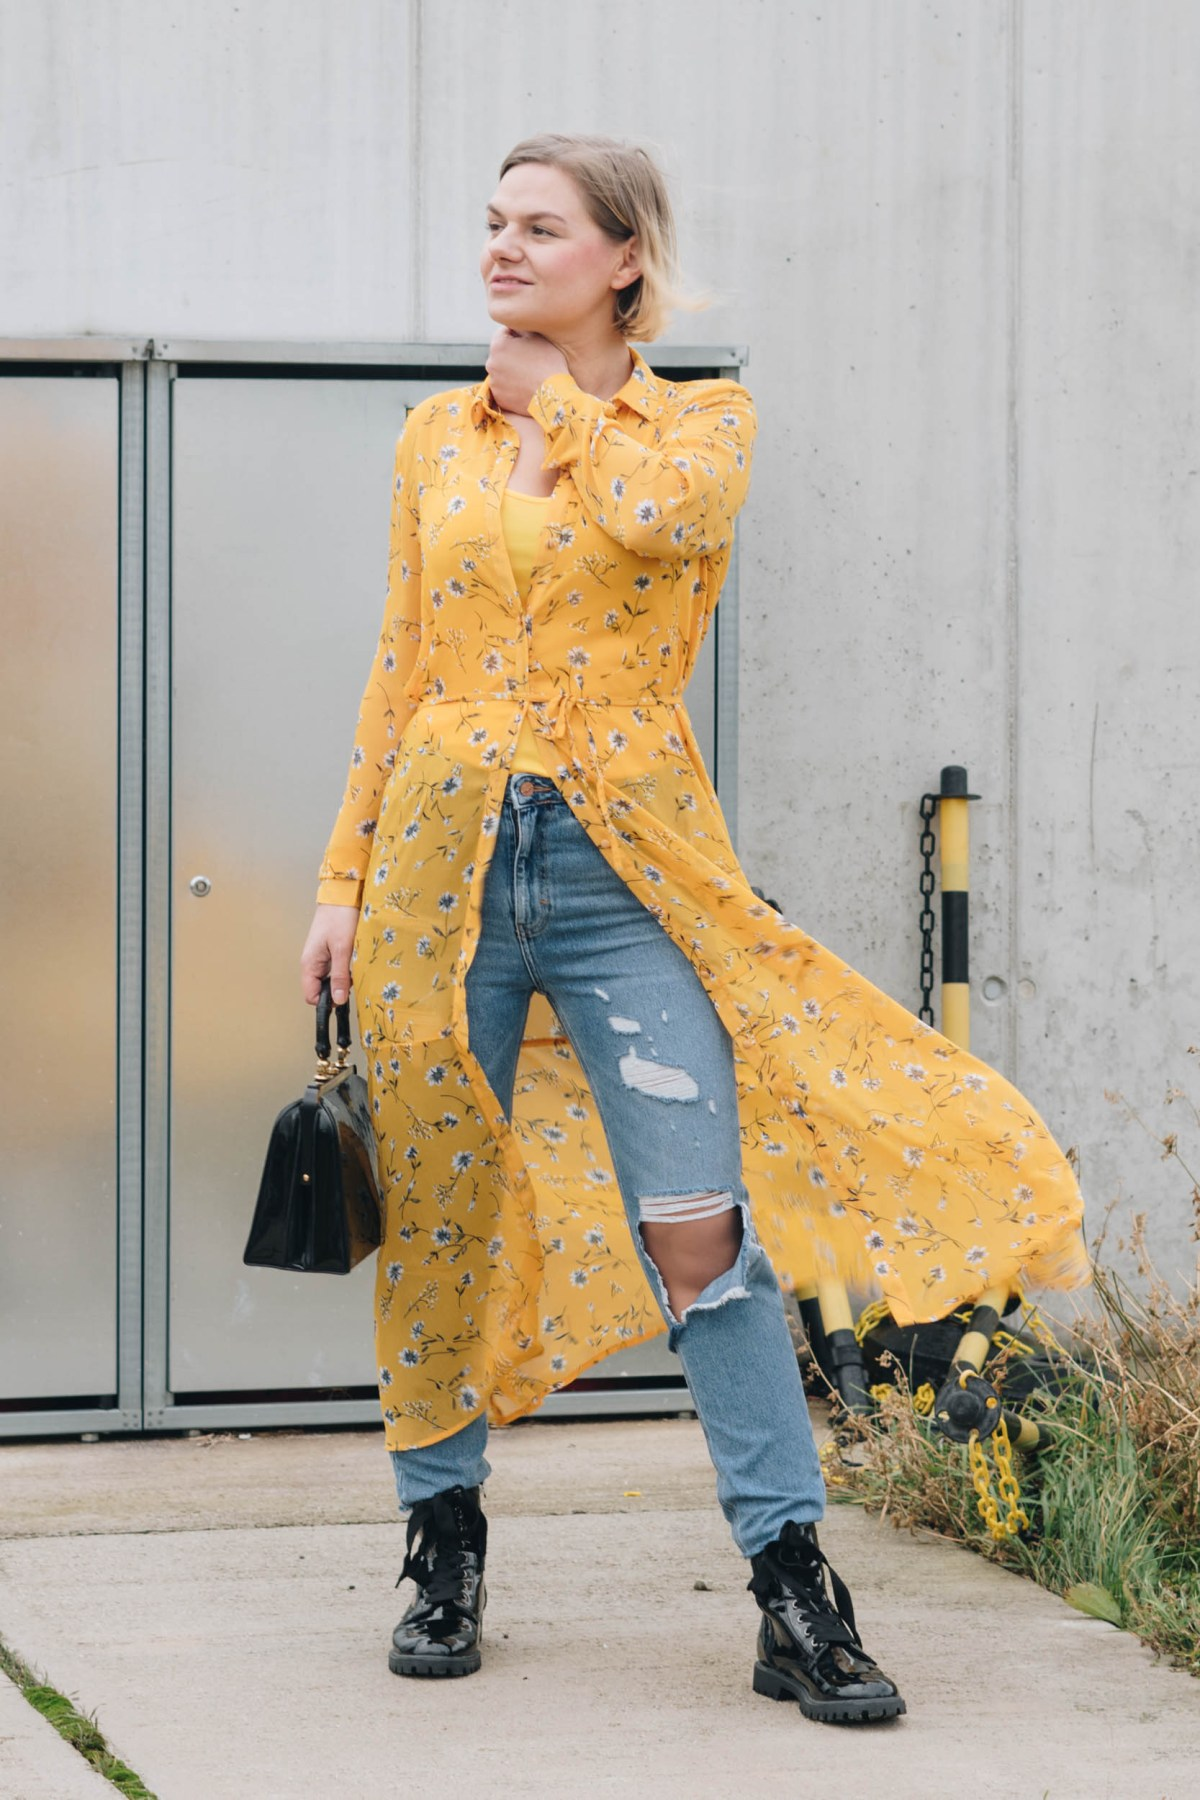 https://i1.wp.com/yellowgirl.at/wp-content/uploads/2019/01/yellowgirl_Valentinstagsoutfit-in-Blumenkleid-von-Only-Jeans-von-New-Look-Lack-Boots-und-Vintage-Lack-Handtasche-8-von-11.jpg?fit=1200%2C1800&ssl=1